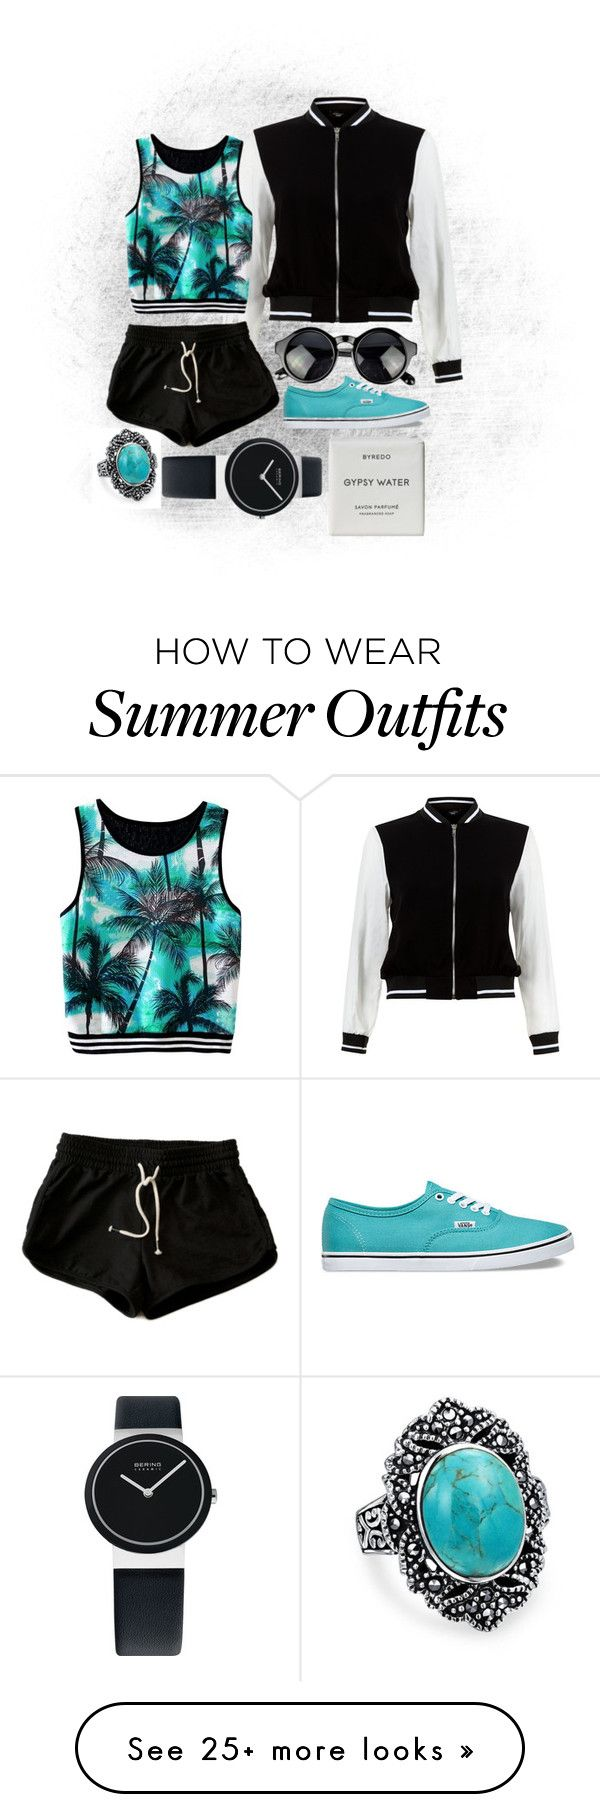 """We Don't Deal With Outsiders Very Well"" by katielynnr on Polyvore featuring Bling Jewelry, New Look, Vans and Byredo"